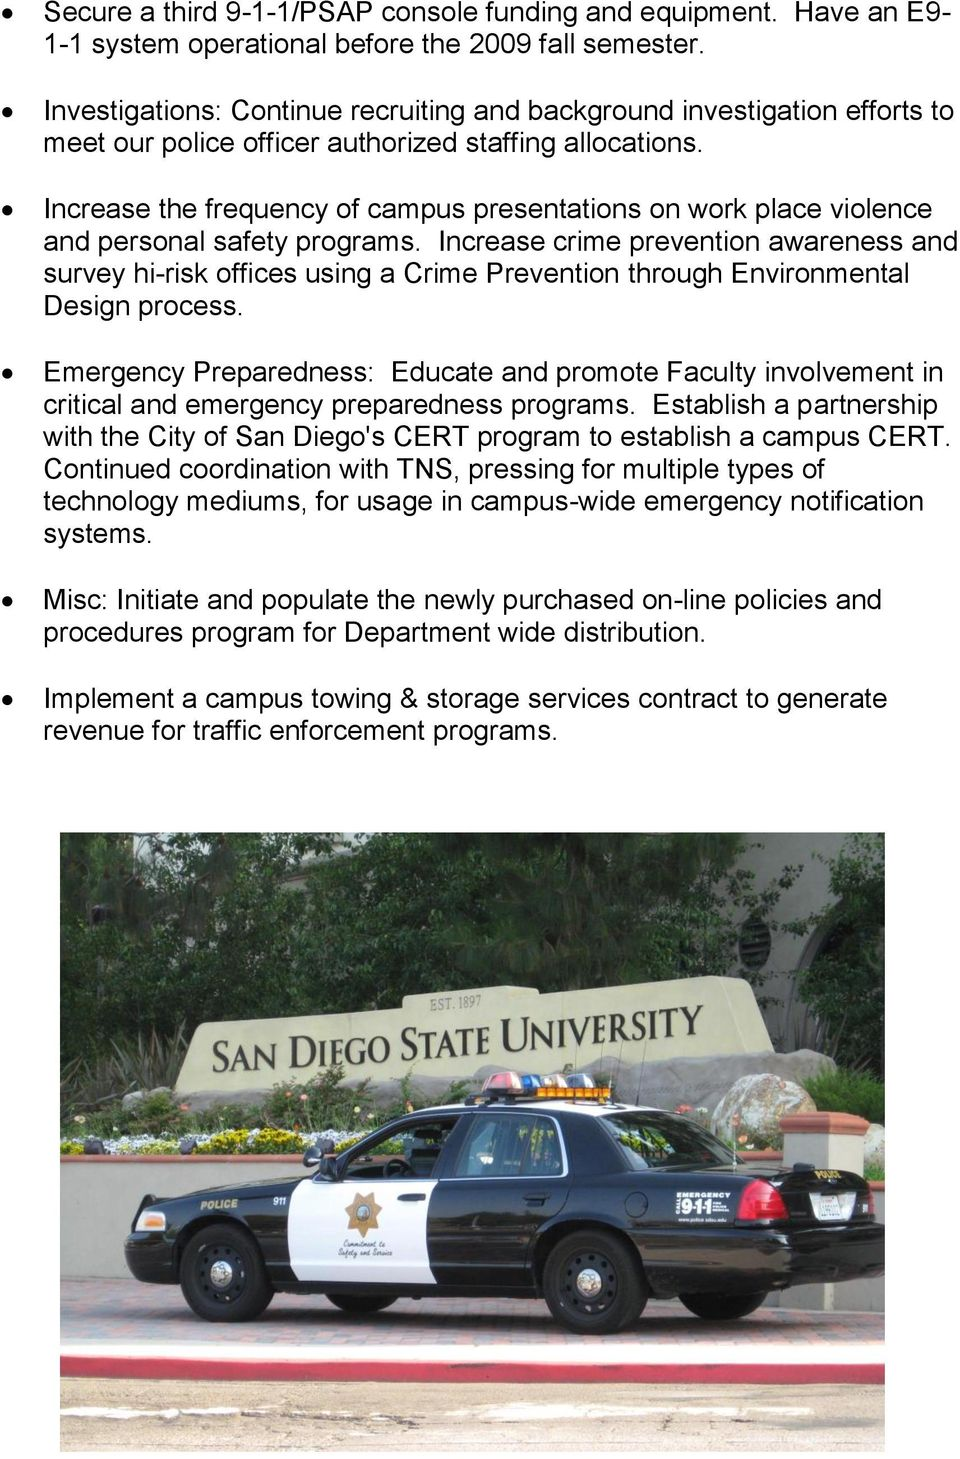 Increase the frequency of campus presentations on work place violence and personal safety programs.